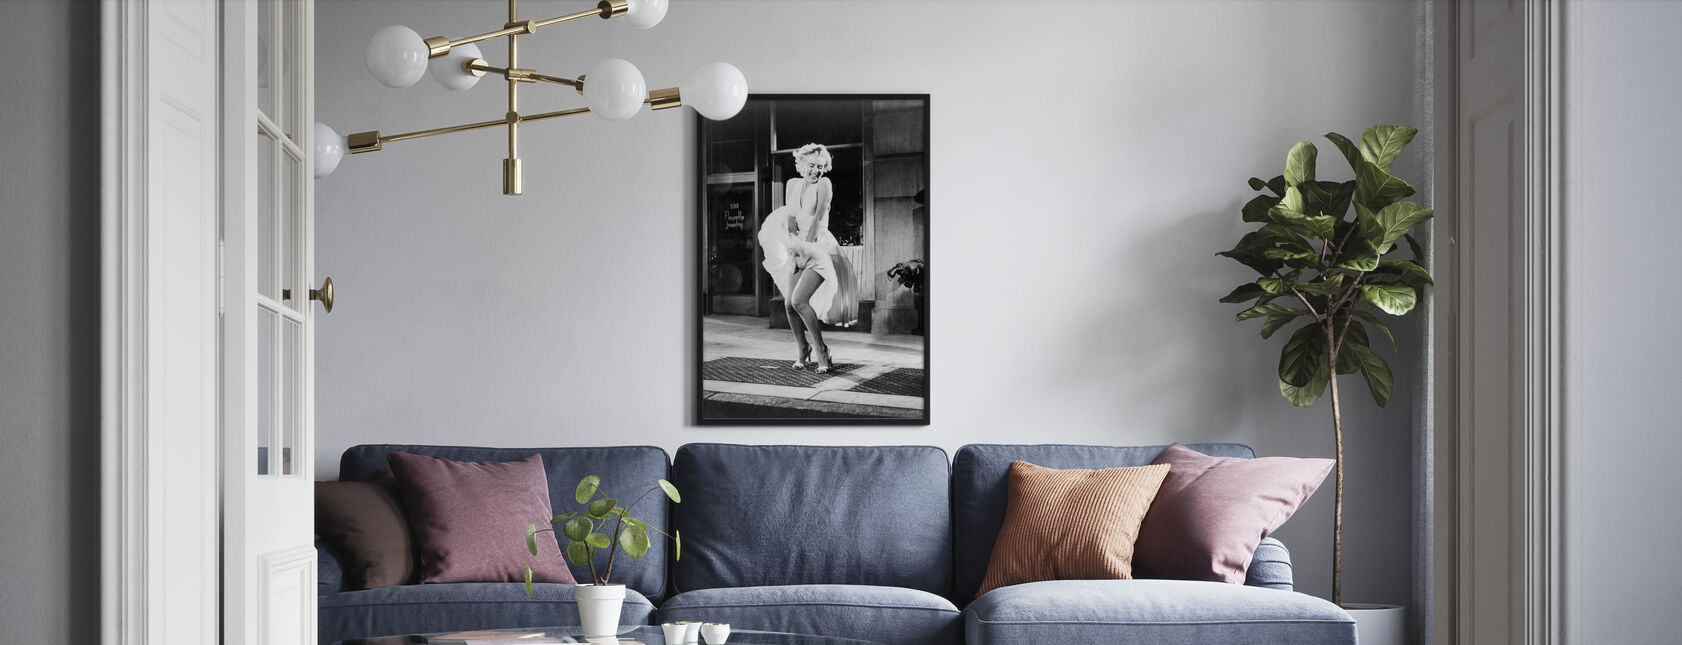 The Seven Year Itch - Poster - Living Room